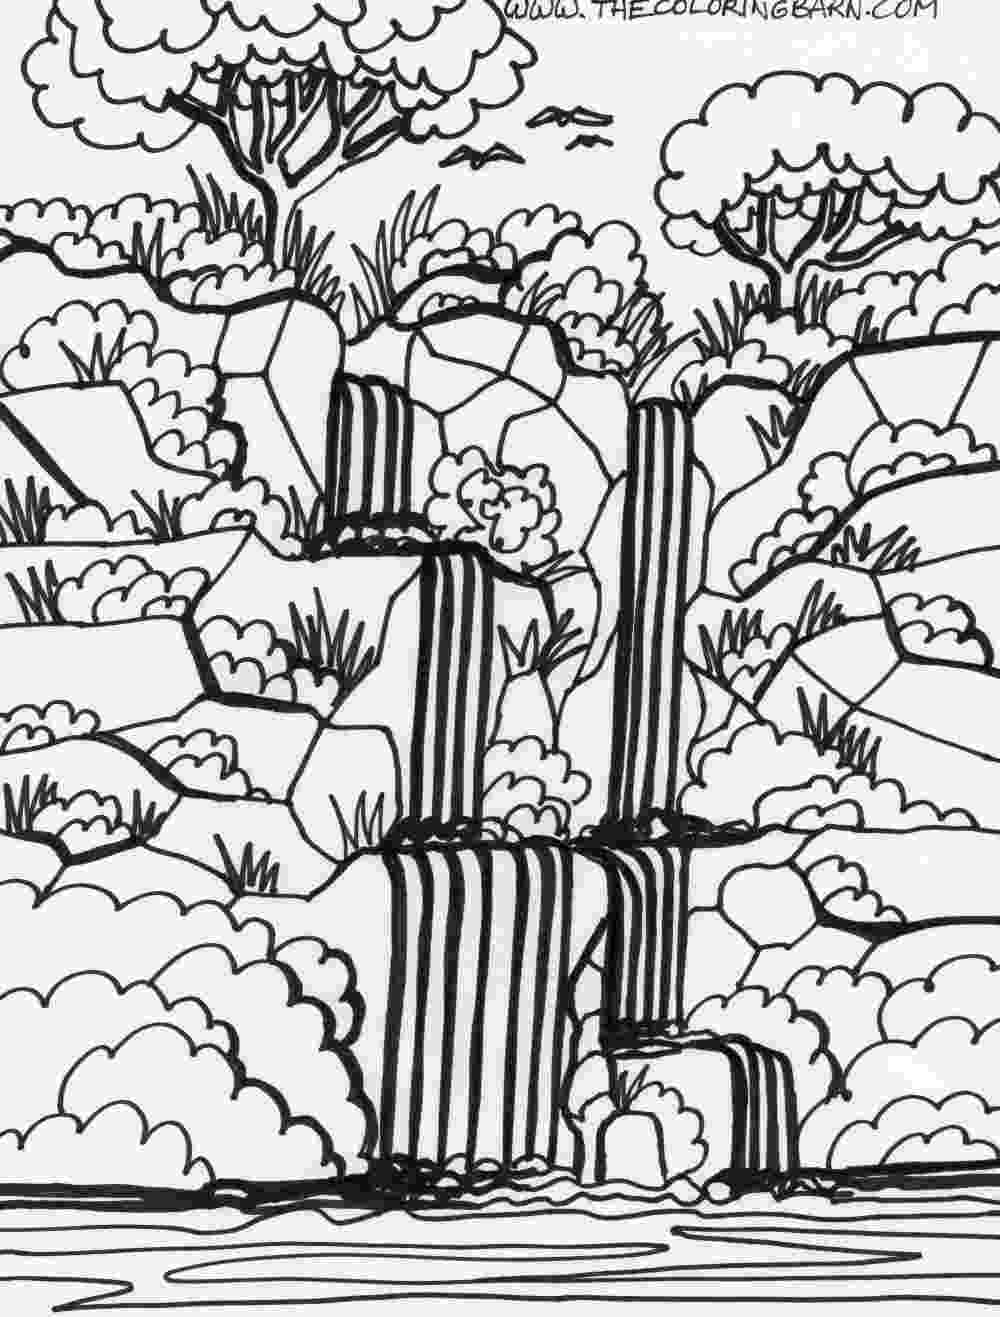 rainforest animals pictures to print rainforest animals coloring pages free coloring home print pictures animals to rainforest